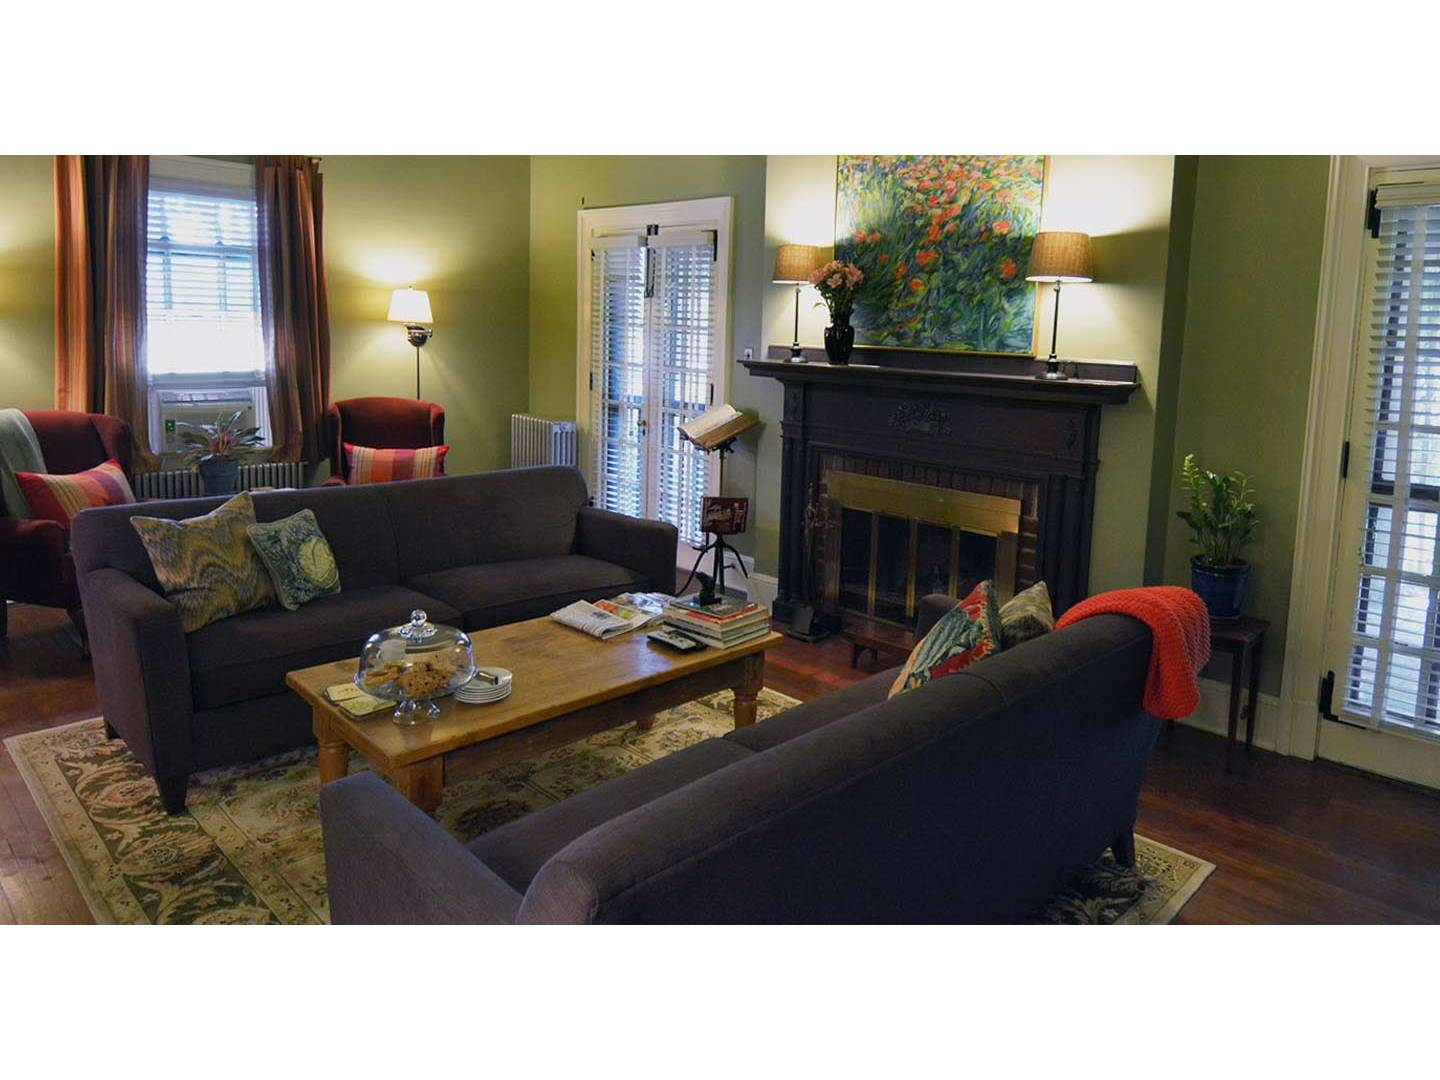 A living room filled with furniture and a flat screen tv at The Lancaster Bed and Breakfast.